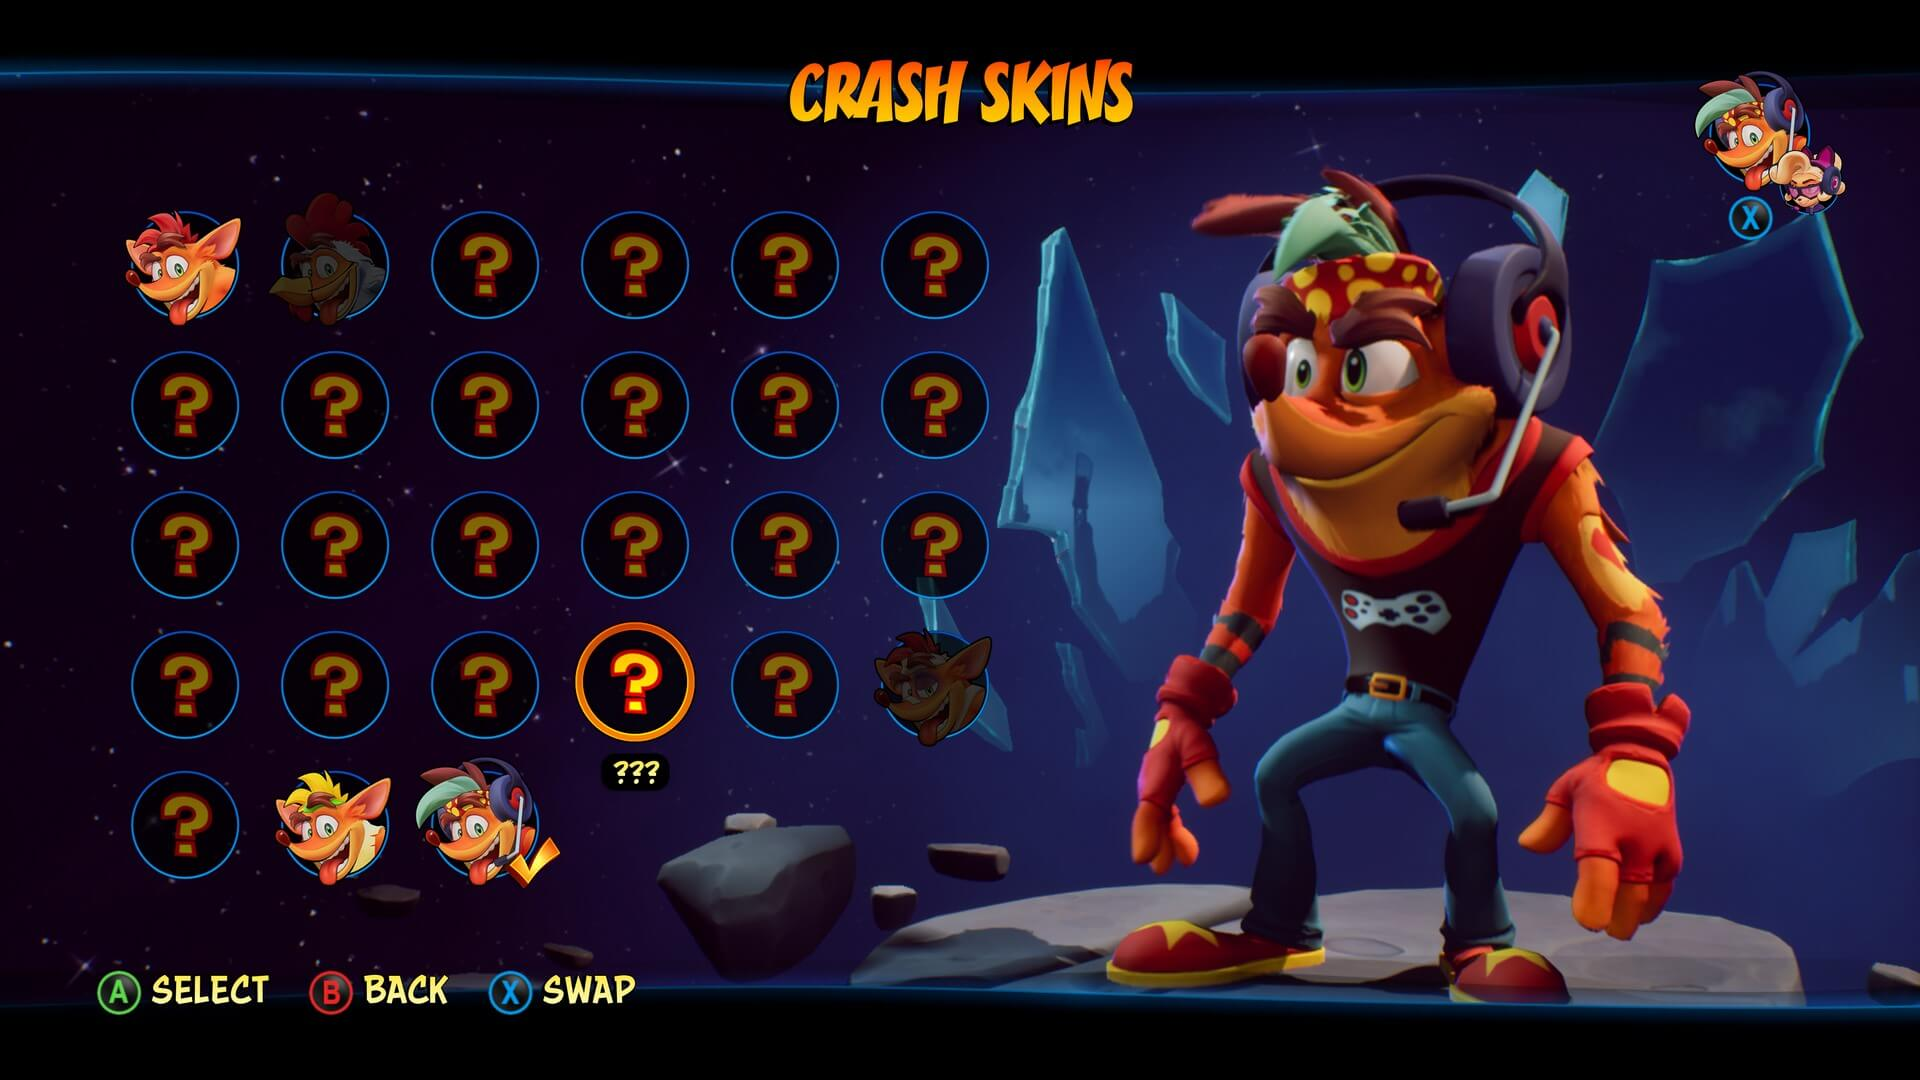 Crash Bandicoot 4: It's About Time - Review